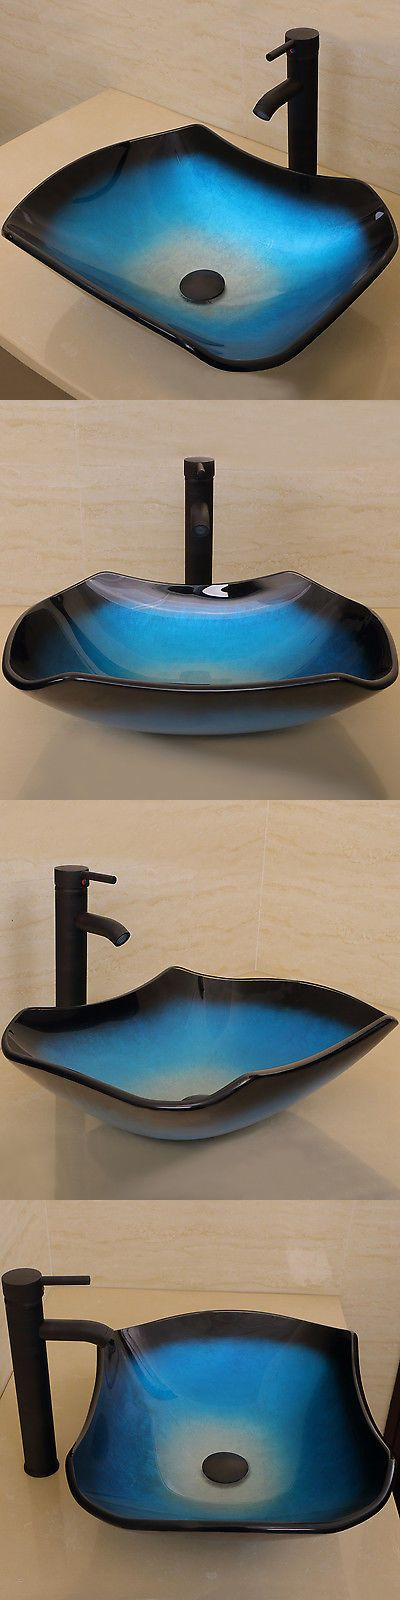 Sinks 71283: Bathroom Vessel Sink Tempered Glass W Oil Rubbed Bronze Faucet Combo Wave Blue -> BUY IT NOW ONLY: $90.99 on eBay!